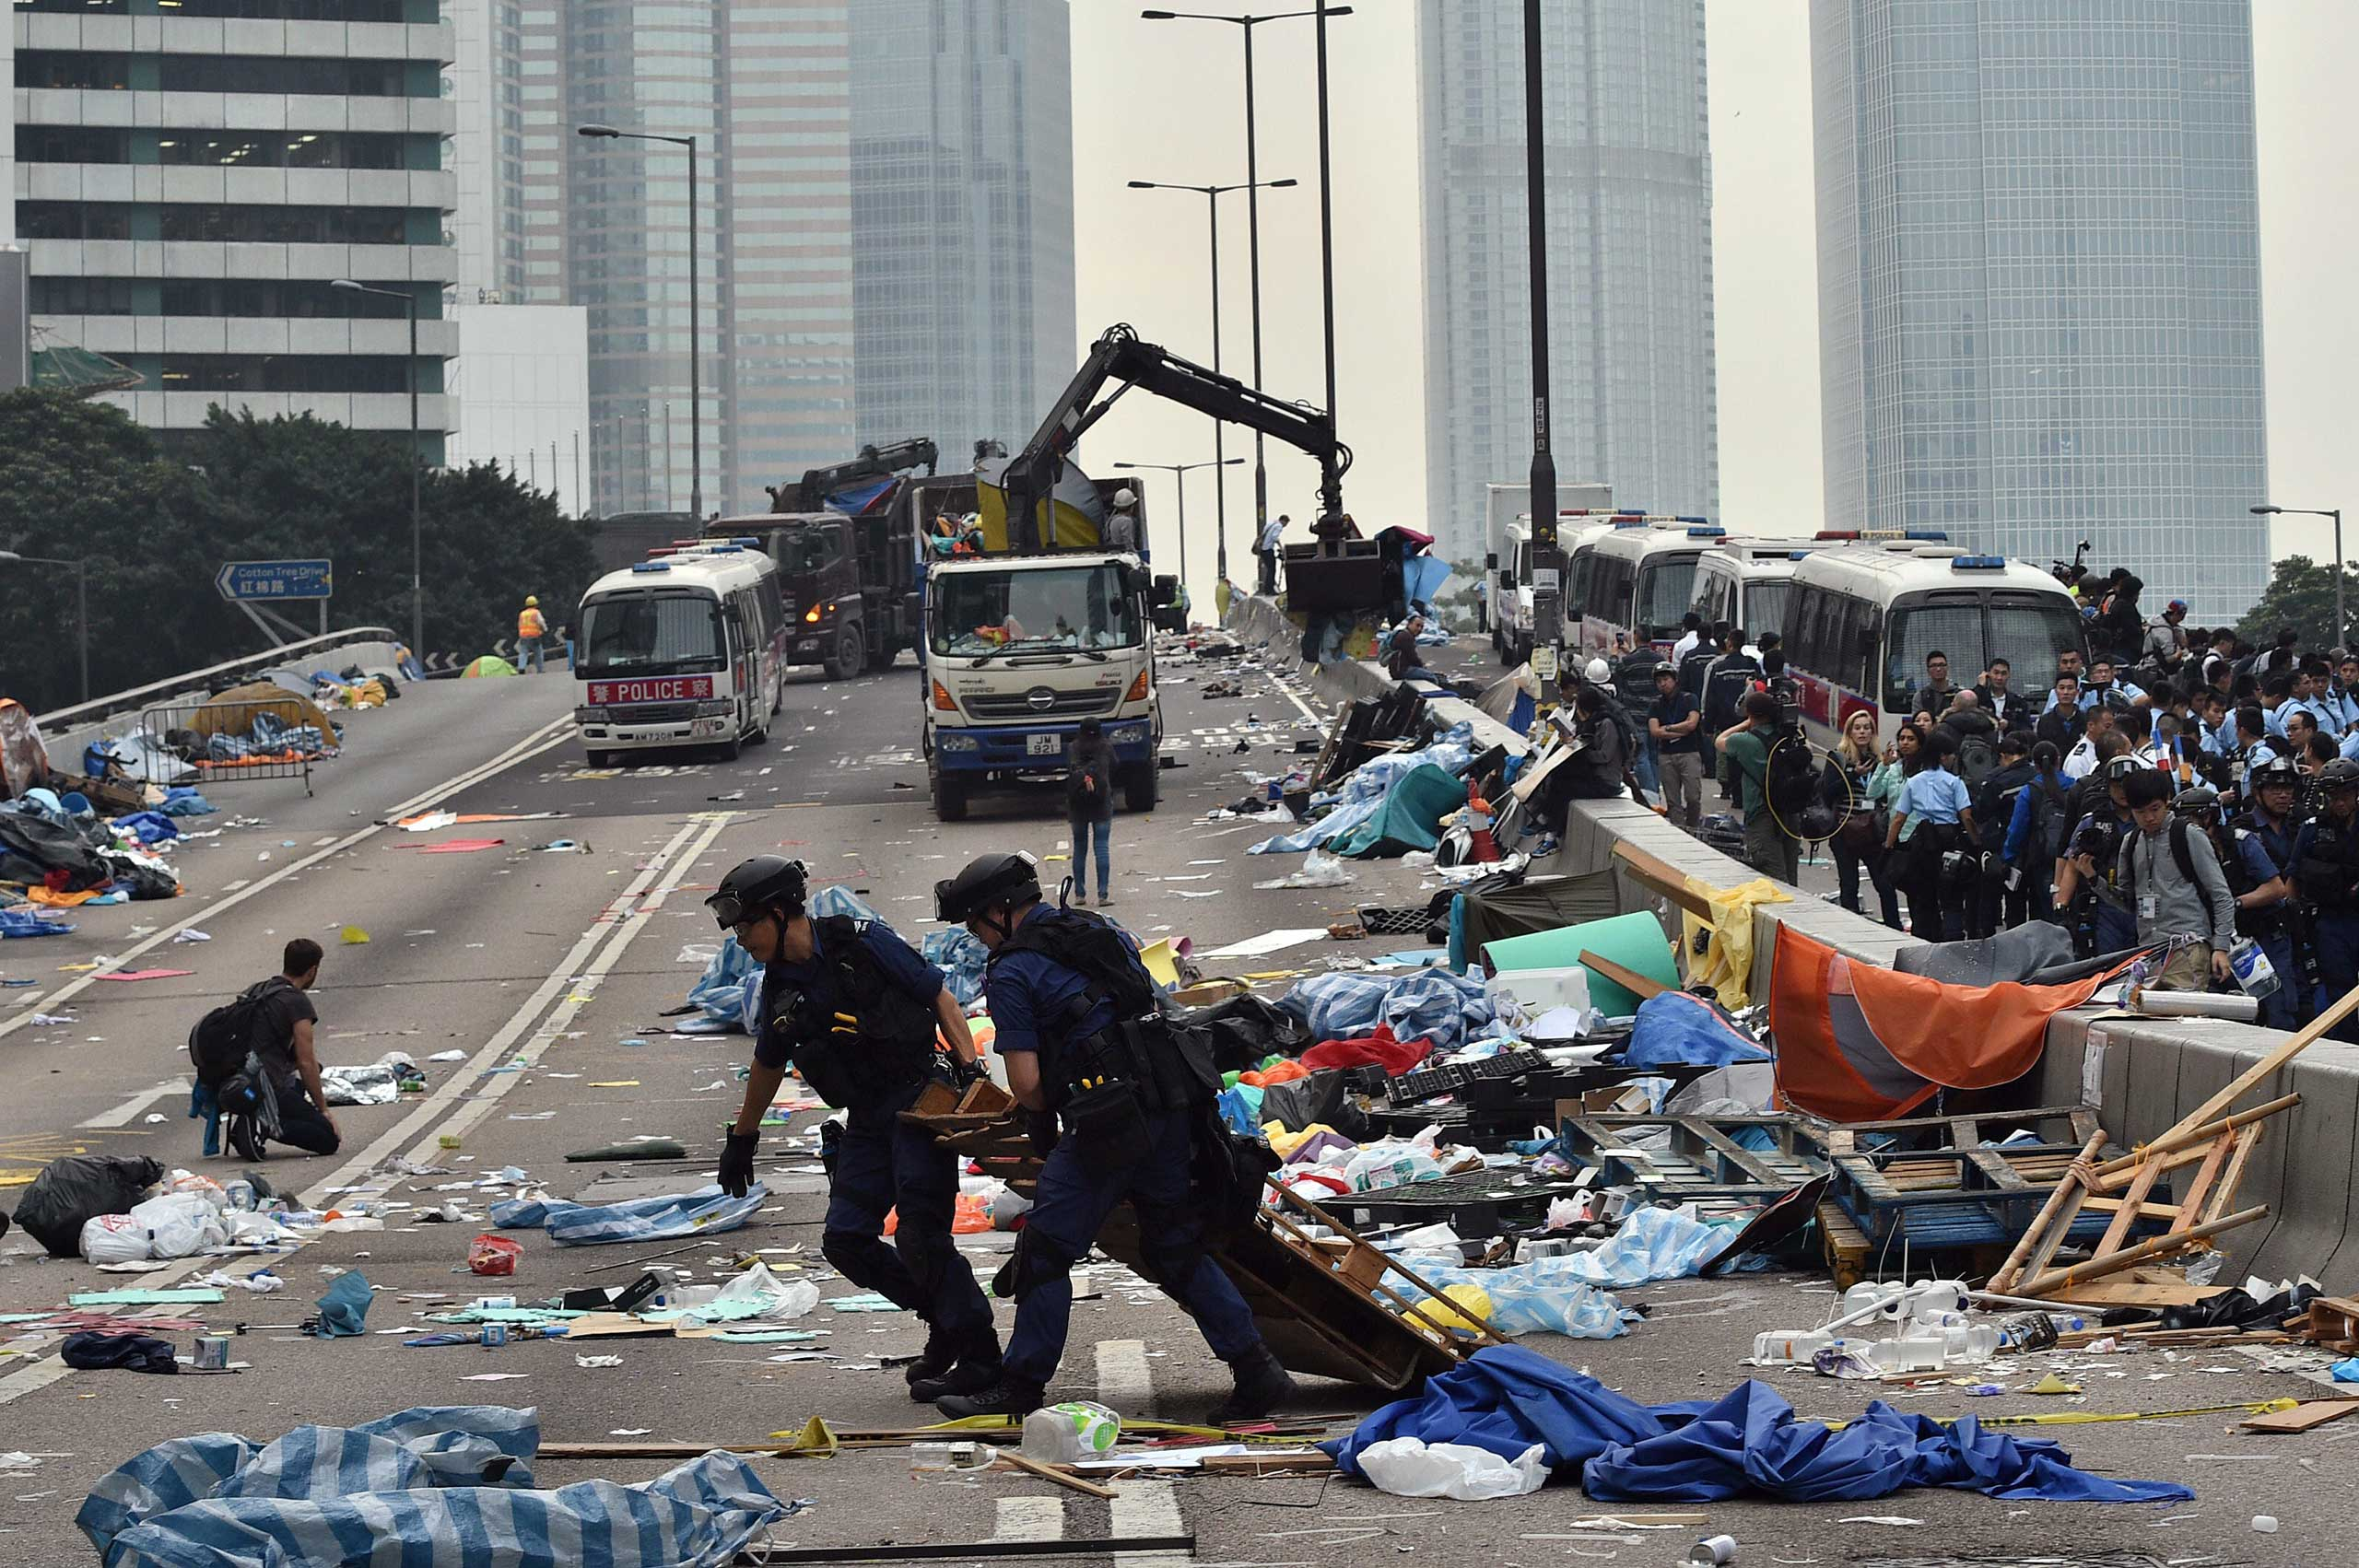 Hong Kong police dismantle the remains of the pro-democracy protest camp in the Admiralty district of Hong Kong on Dec. 11, 2014.